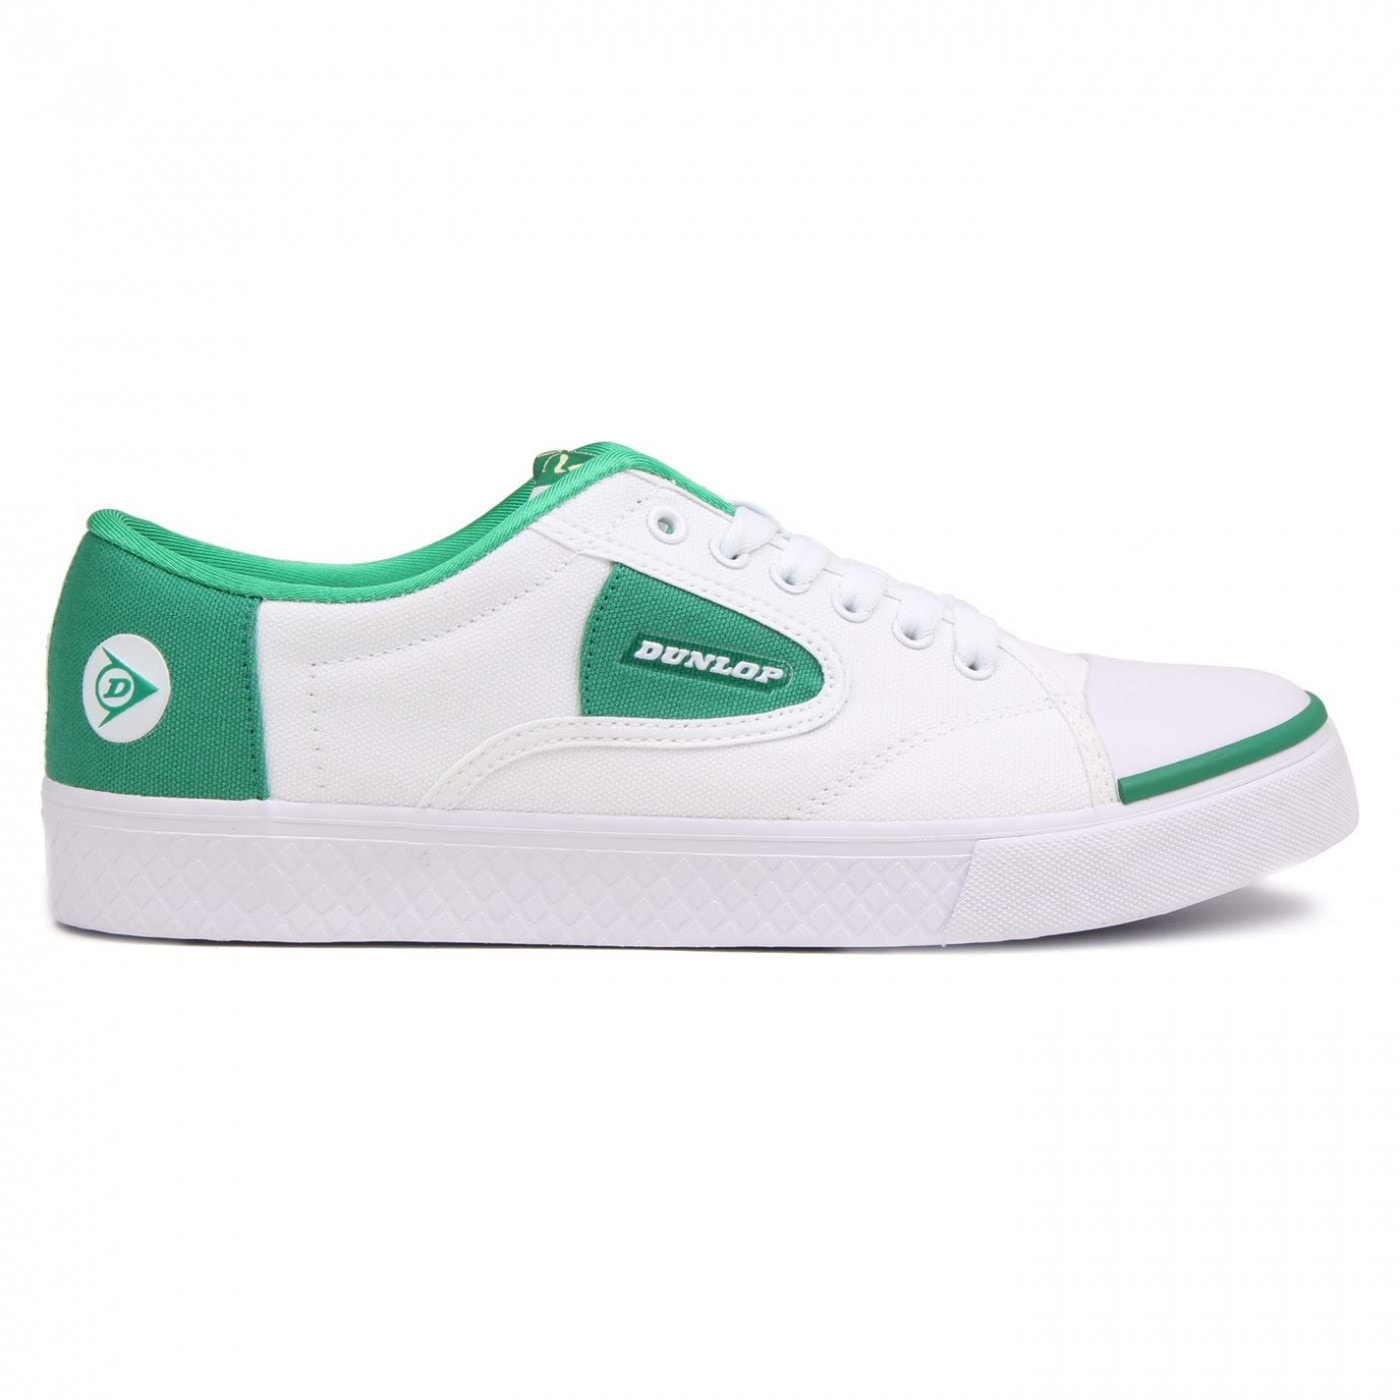 Dunlop Green Flash Mens Trainers